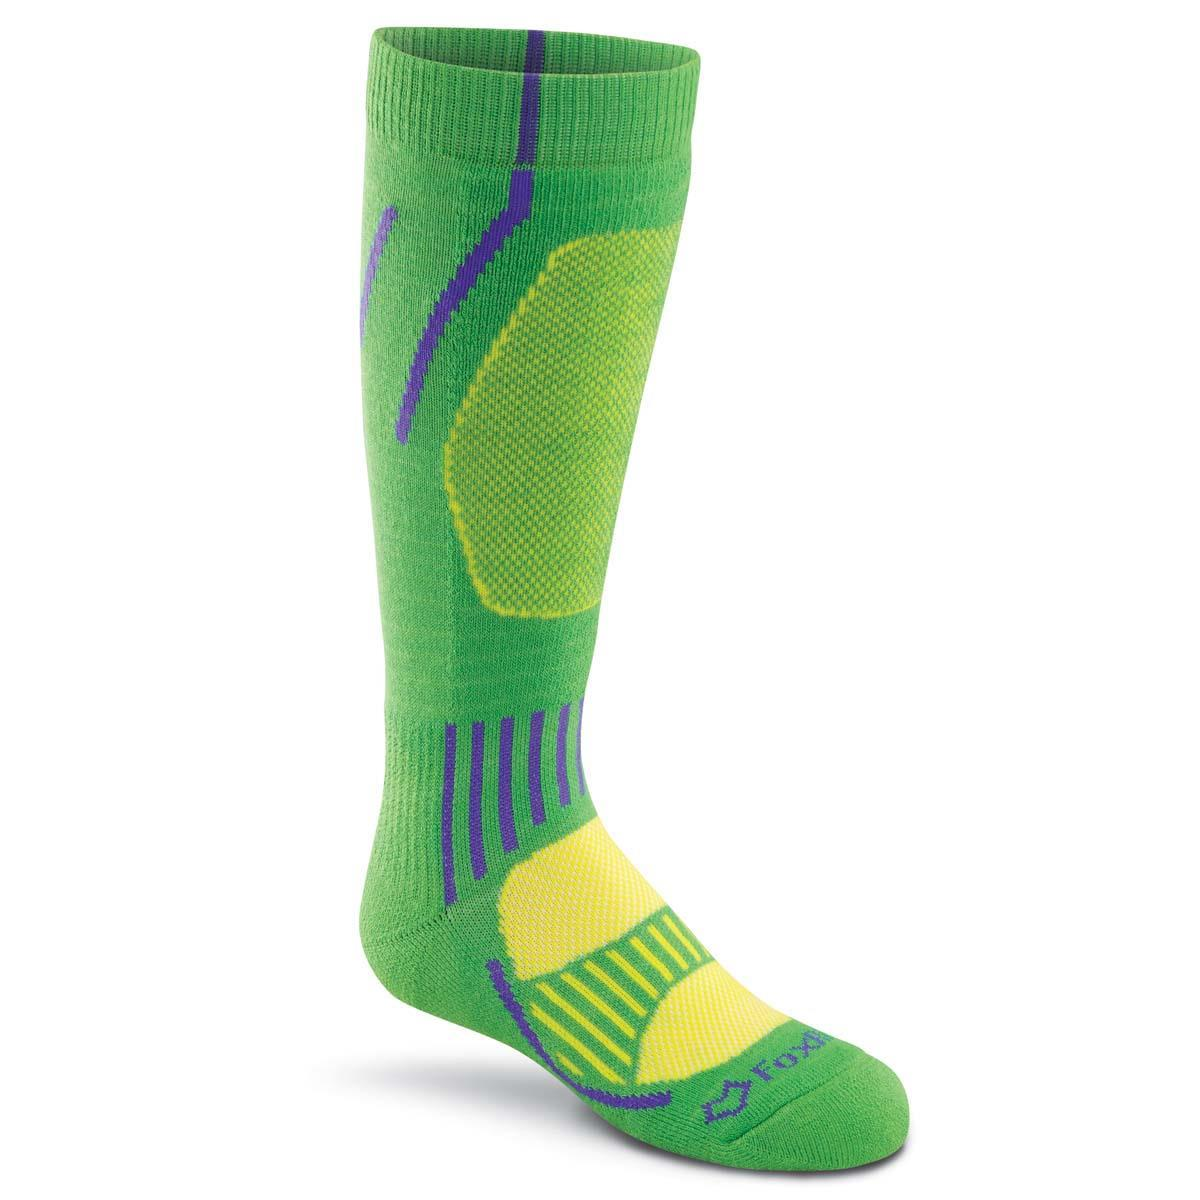 Fox River Mills Boreal Midweight Socks - Youth